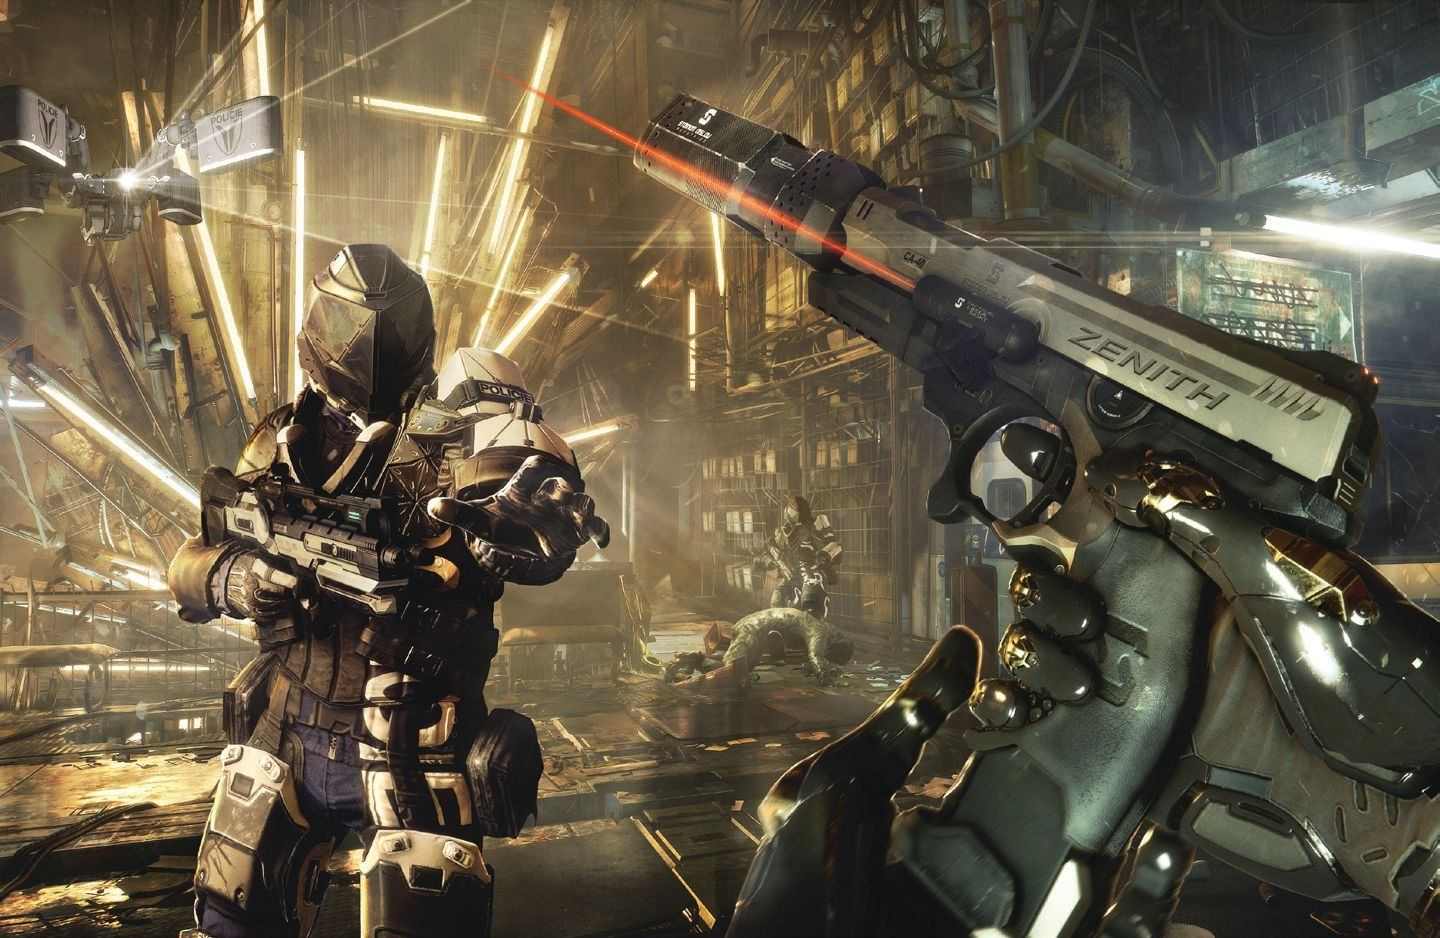 6 Reasons to Play (or Not Play) Deus Ex: Mankind Divided